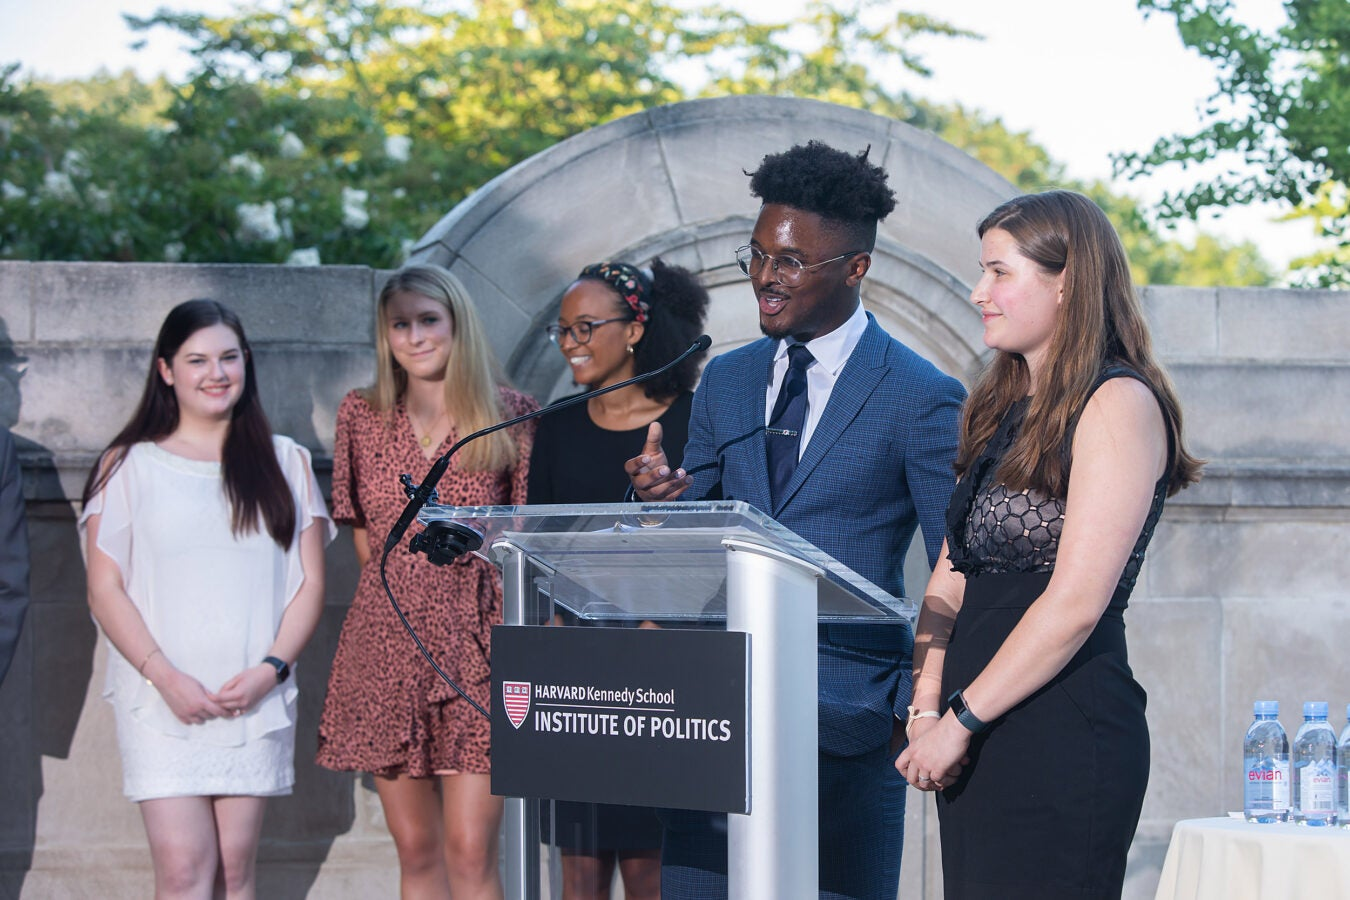 EJayy DeVaughn '20 speaks at the IOP event with Grace Bannister '21 (from left), Anna Duffy '21, Maya Jenkins '21, and Kate Krolicki '20.